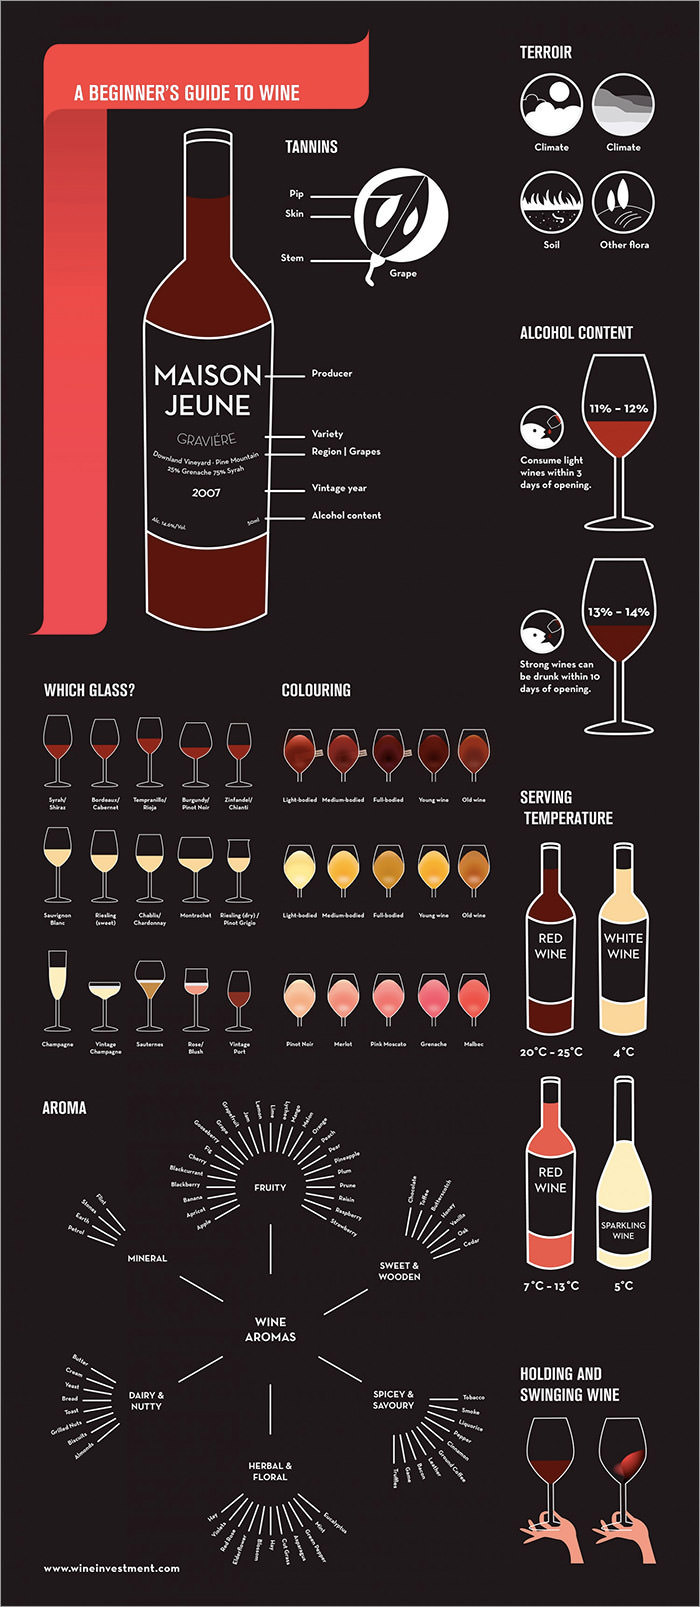 wine-beginner-guide